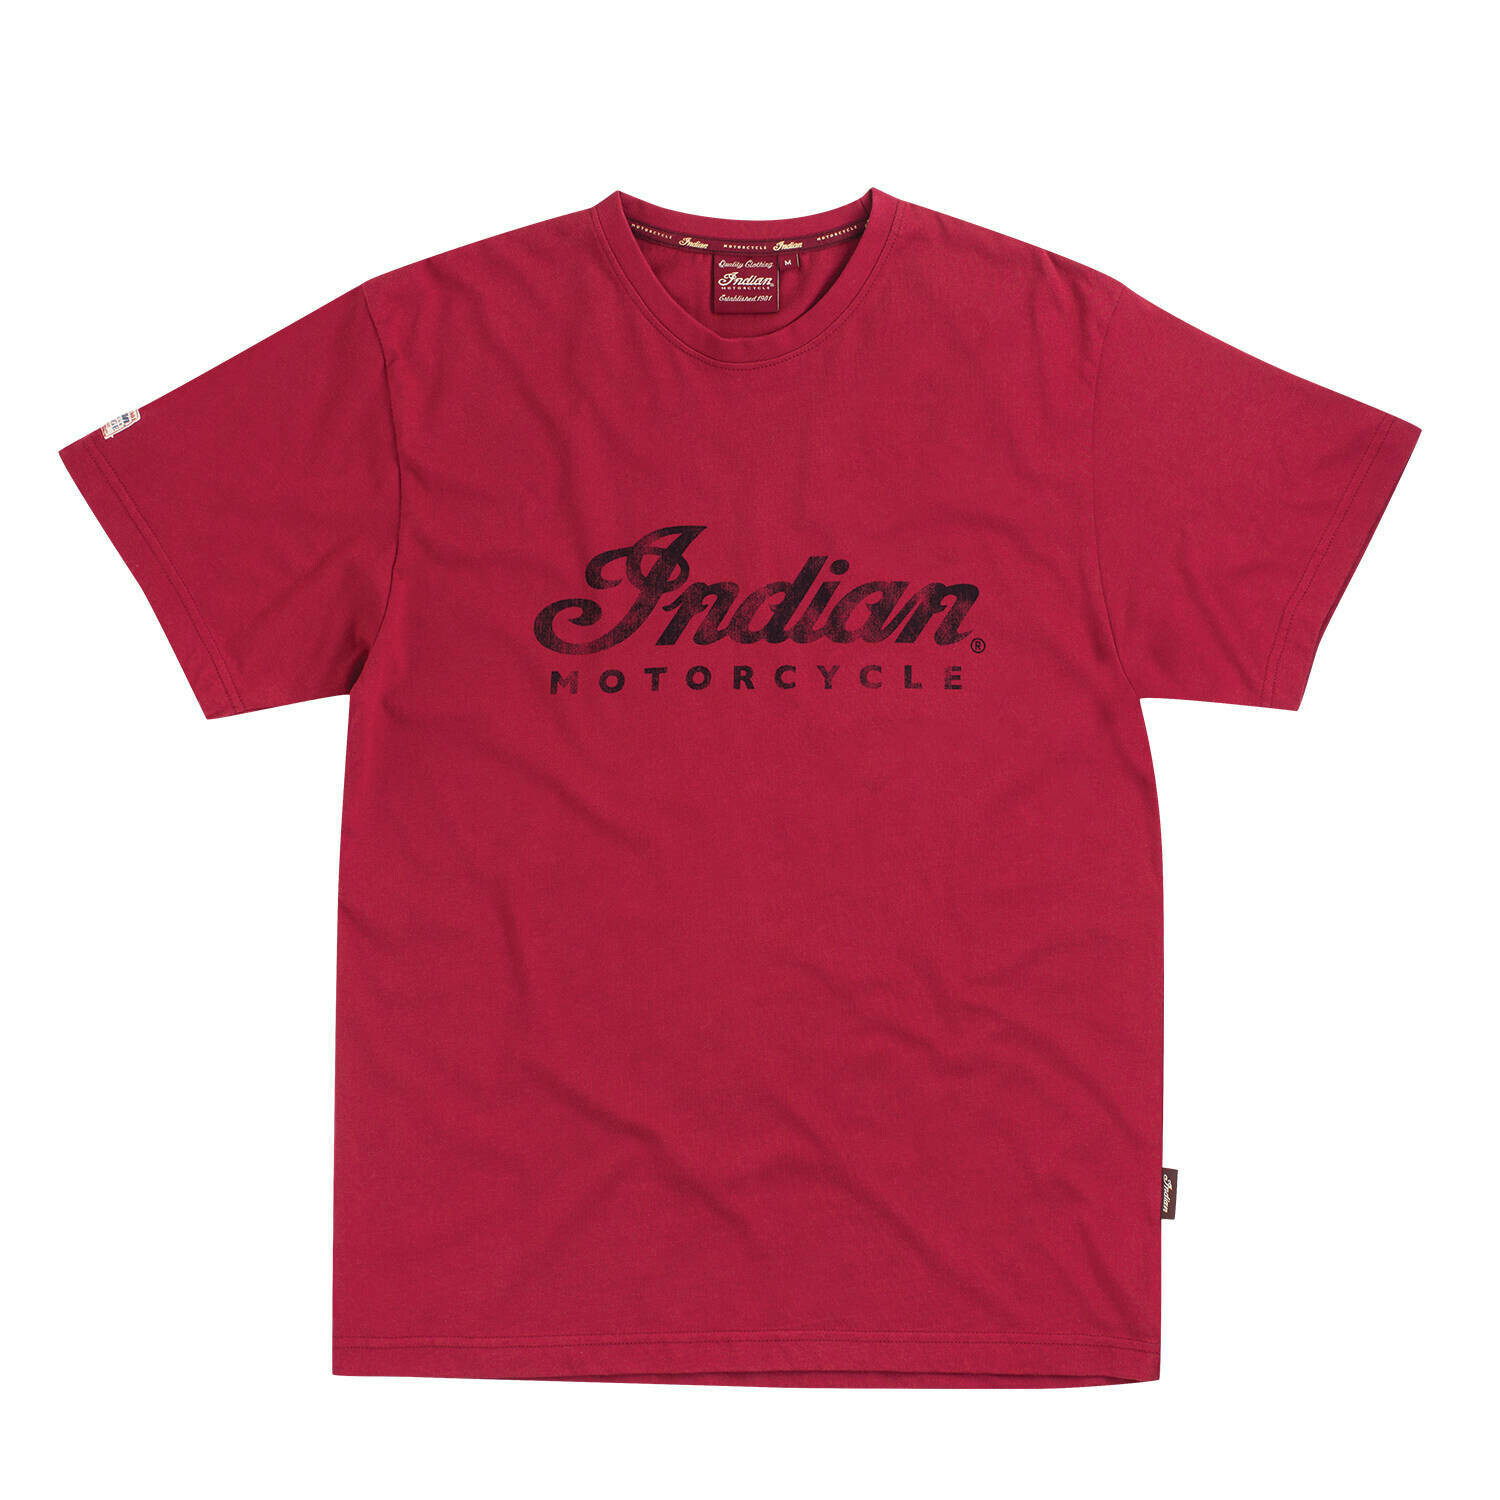 SS RED LOGO TEE MENS